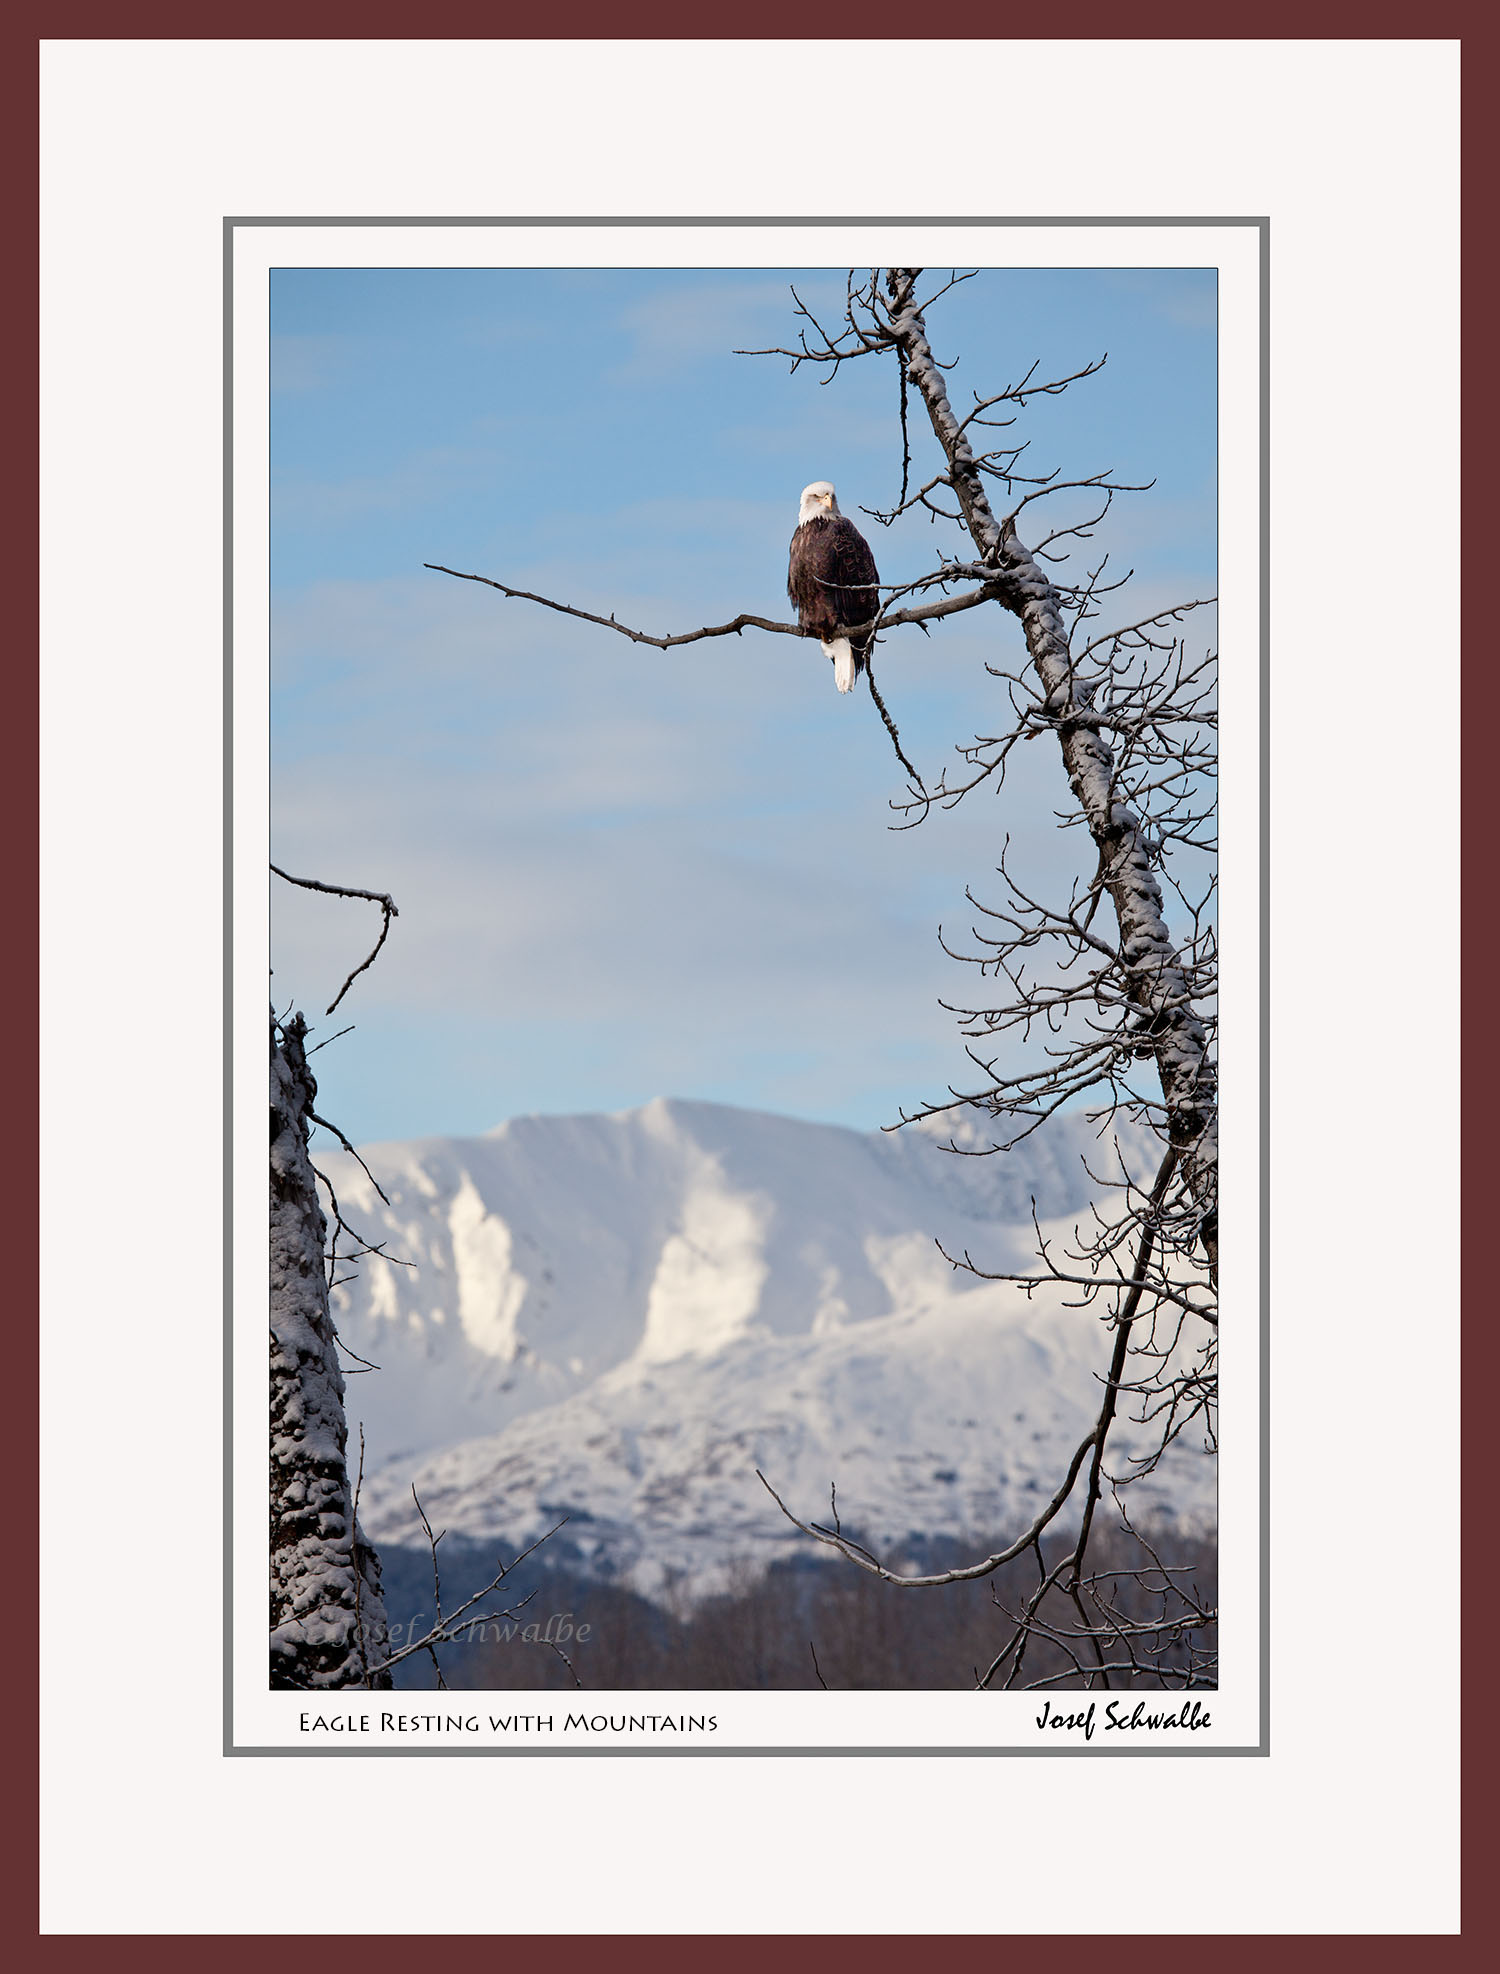 Eagle Resting with Mountains